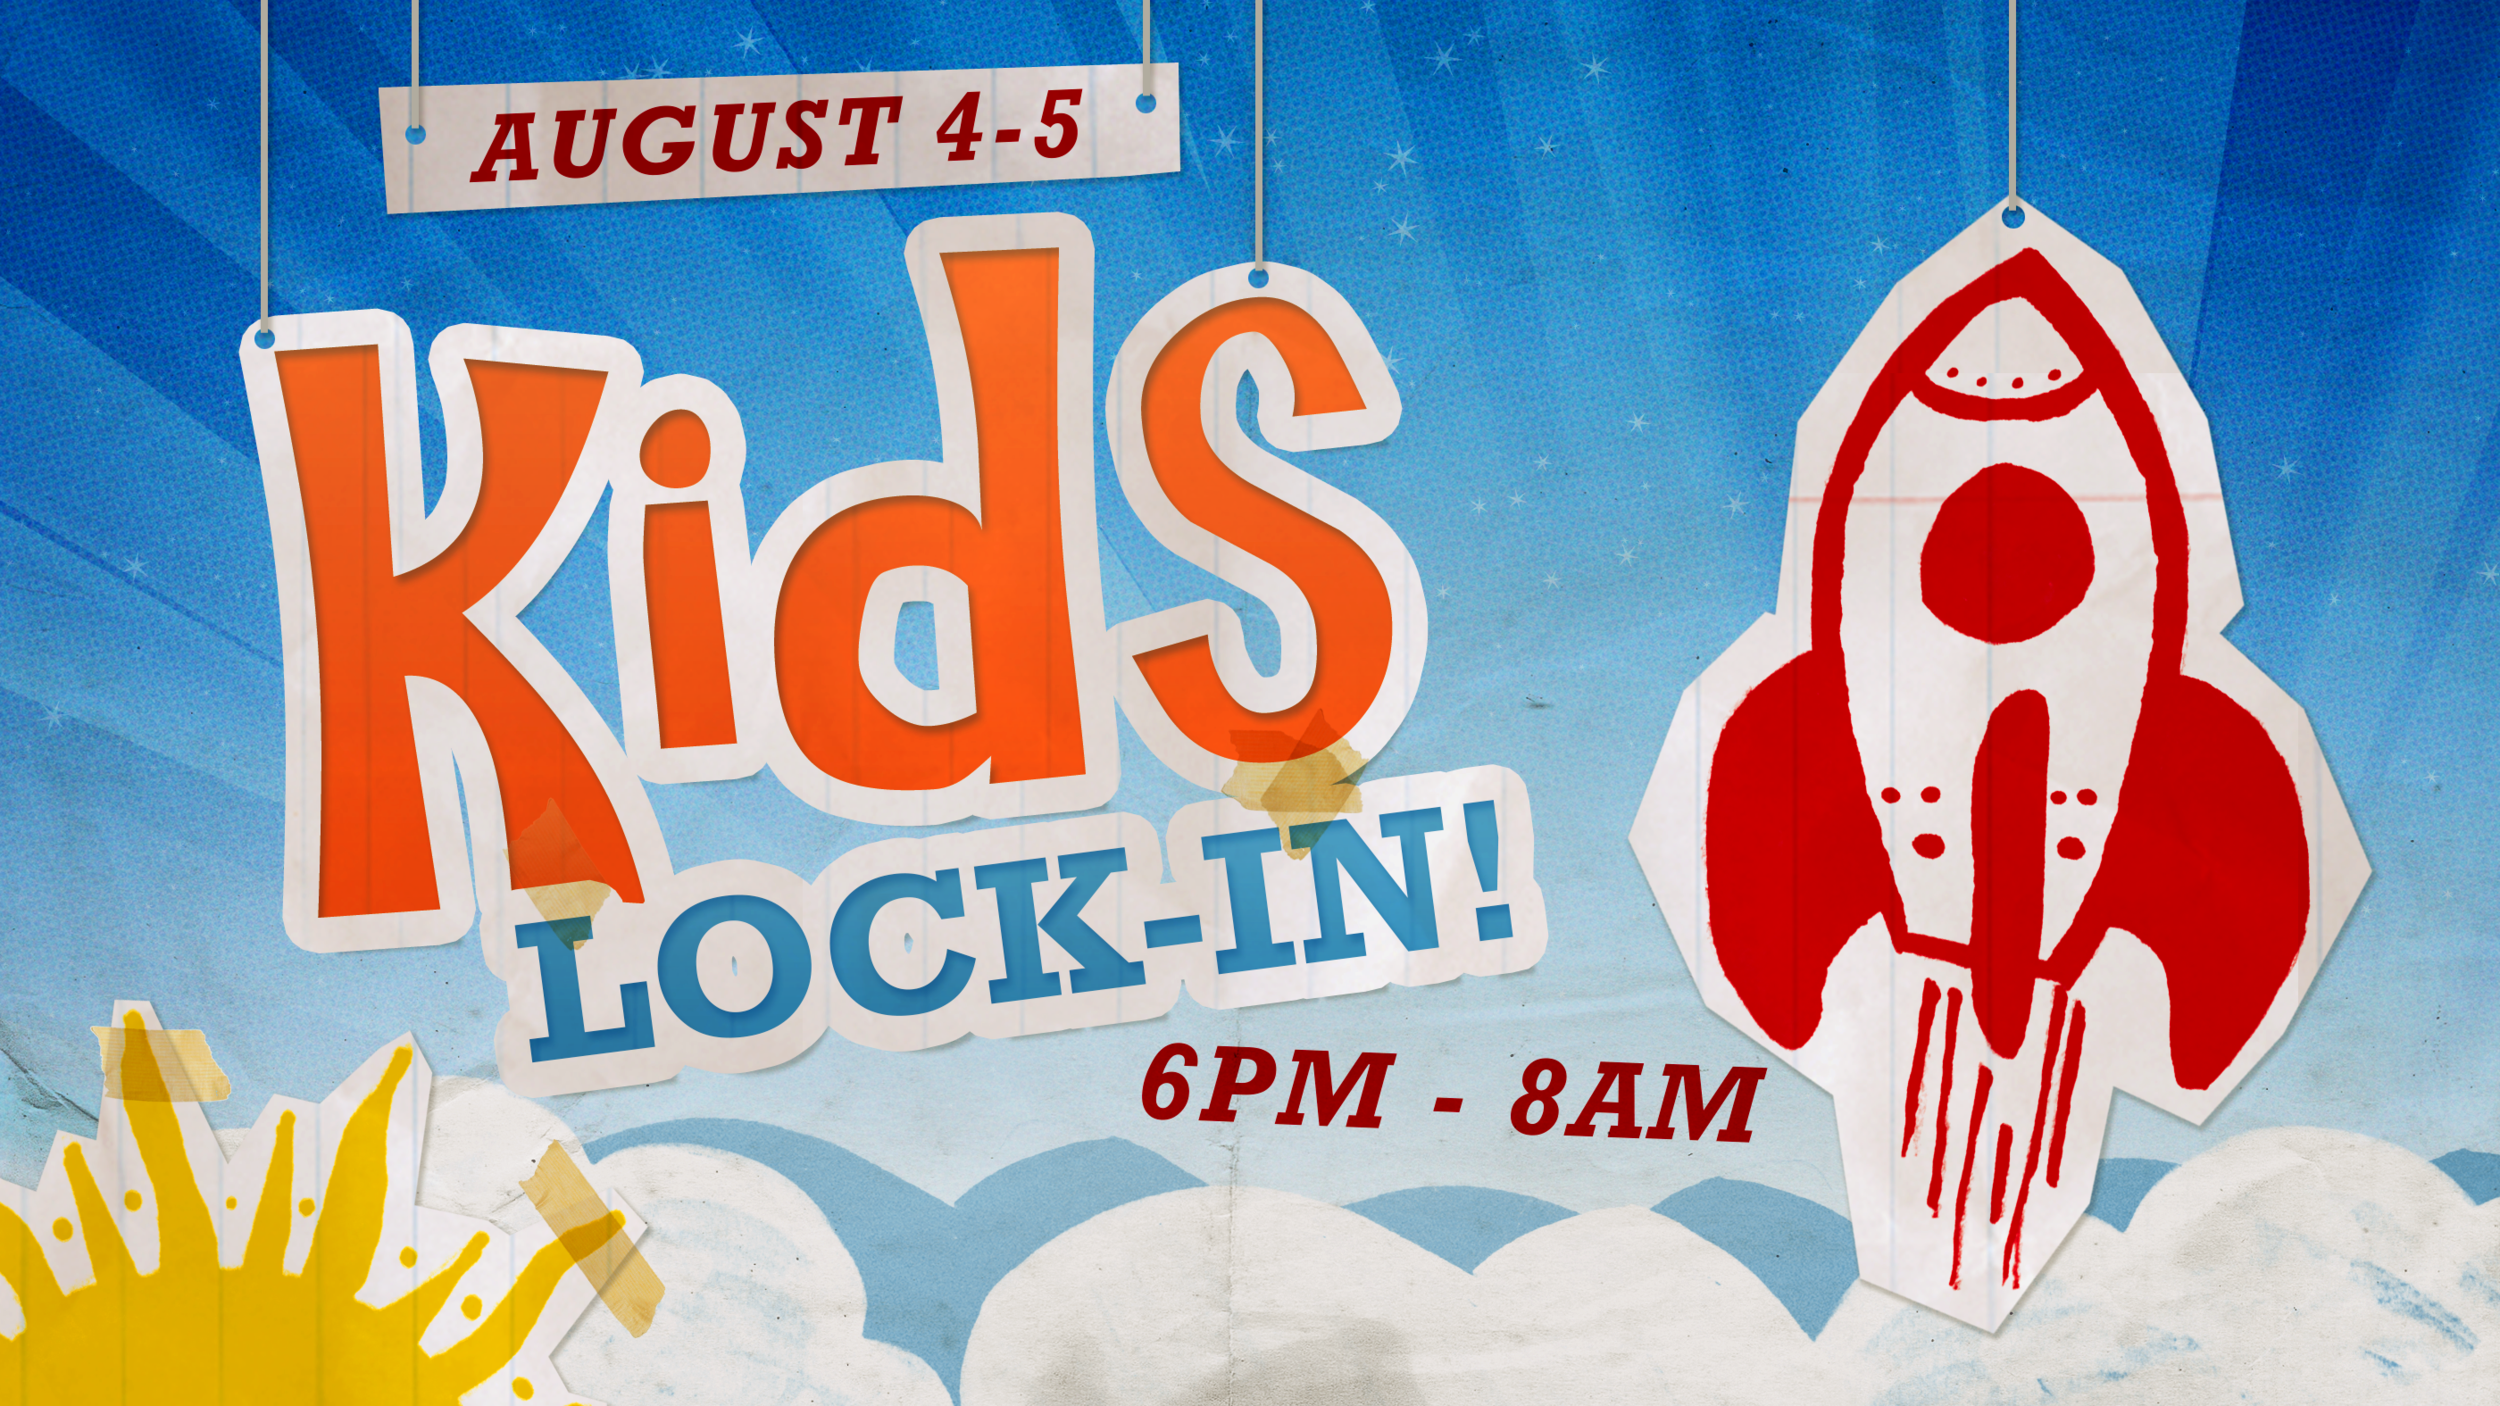 Freedom Kids Back To School Lock-In  The Freedom Kids Back To School Lock-In will be happening August 4-5! Starting at 6PM, we will have TONS of Food, games, inflatables, an off campus field trip to TBA,VBS music, and so much more!It's all happening at the Student Center. This event is designed for anyone going into K-6th Grade. The event will end promptly at 8AM on the morning of August 5th.  Kids should bring a sleeping bag and pillow in case they decide to sleep.  The cost is only $25!   REGISTER